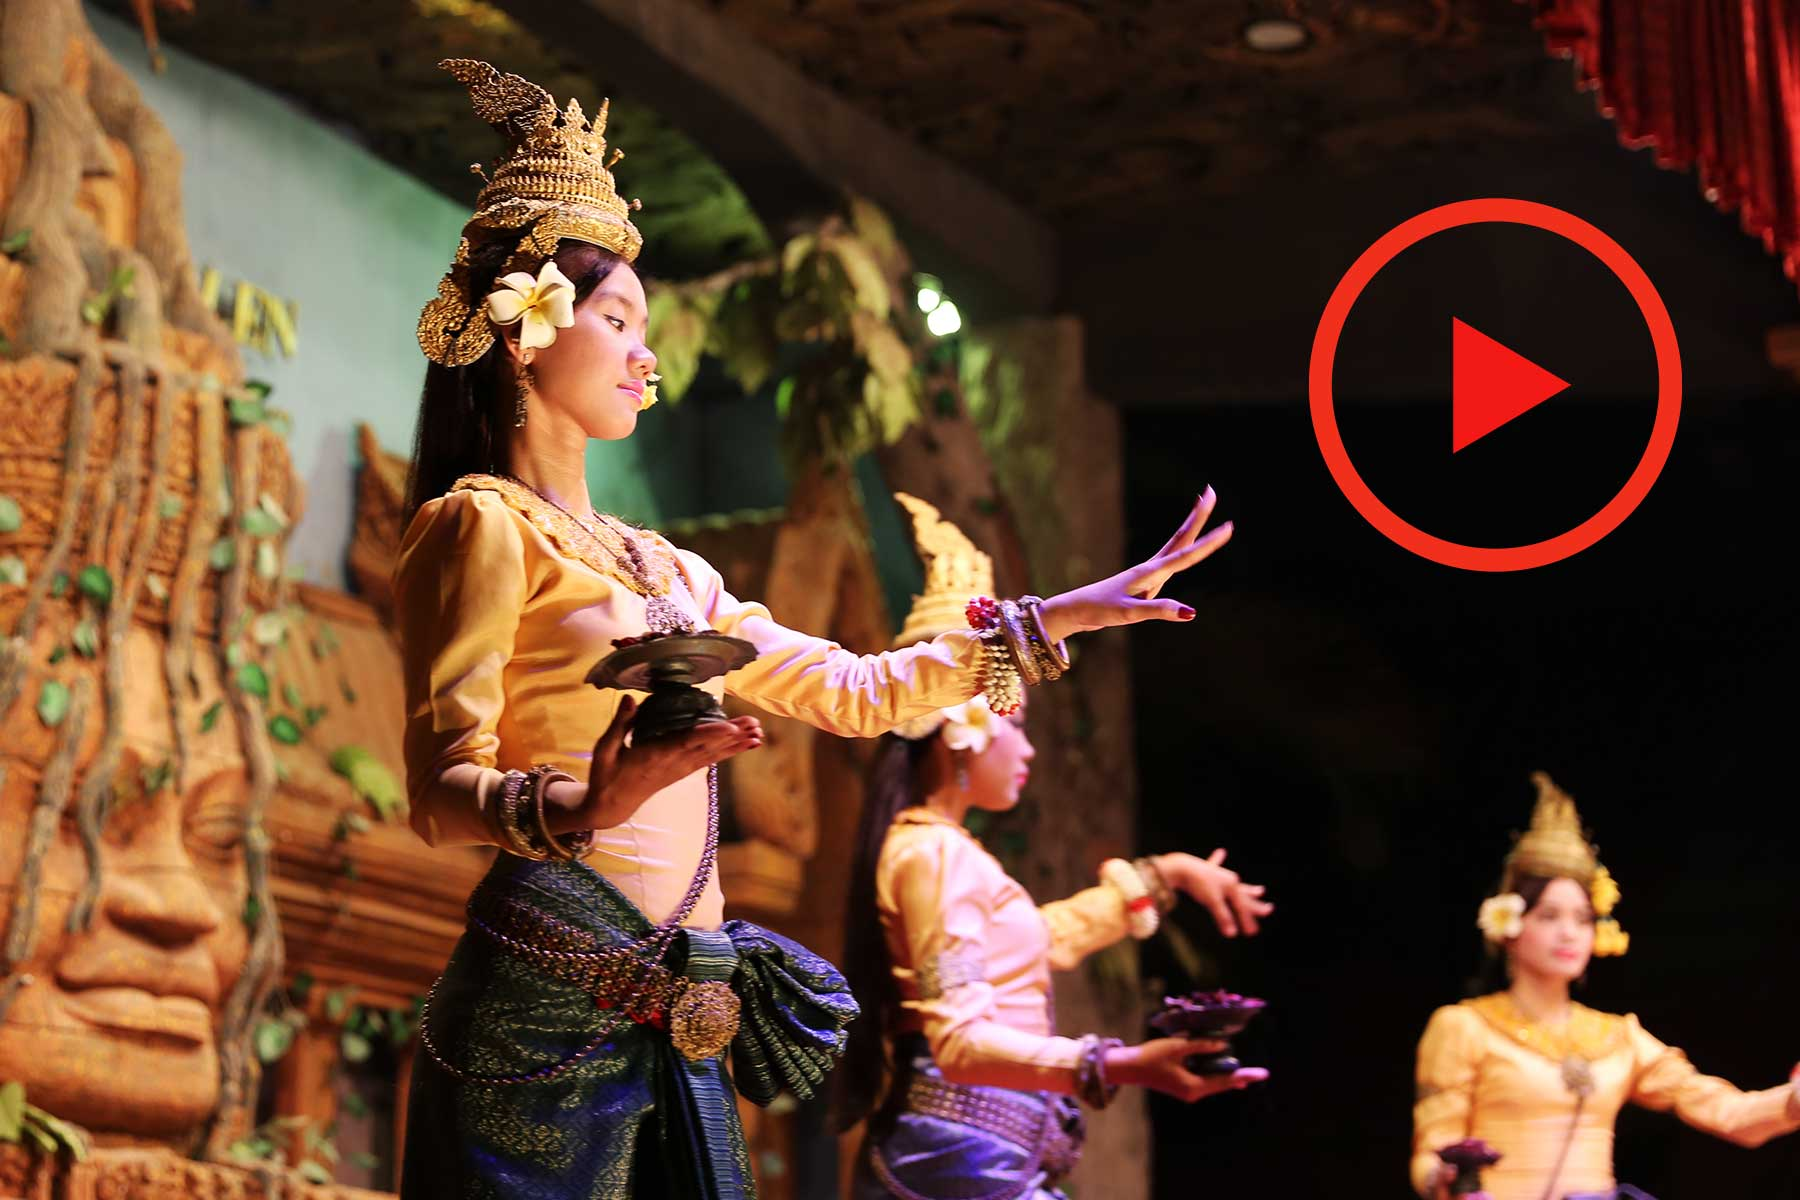 Southeast Asian Civilization - Steven Andrew Martin - Apsara Dancer Siem Reap Cambodia - Asian Studies